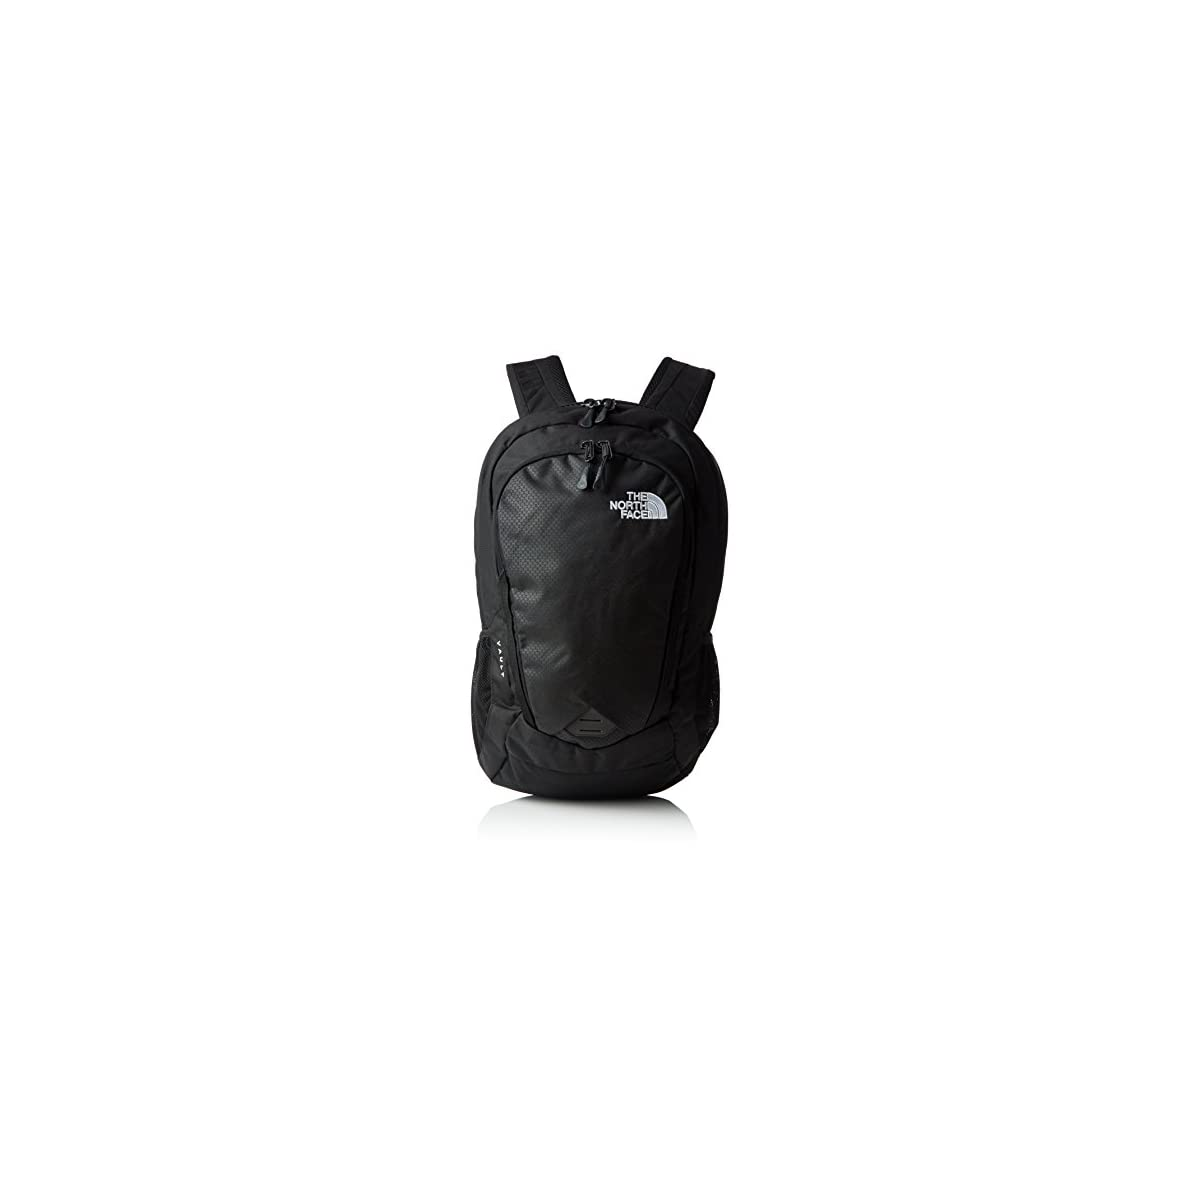 4196aW%2BW52L. SS1200  - The North Face Rucksack Vault Mochila, Unisex